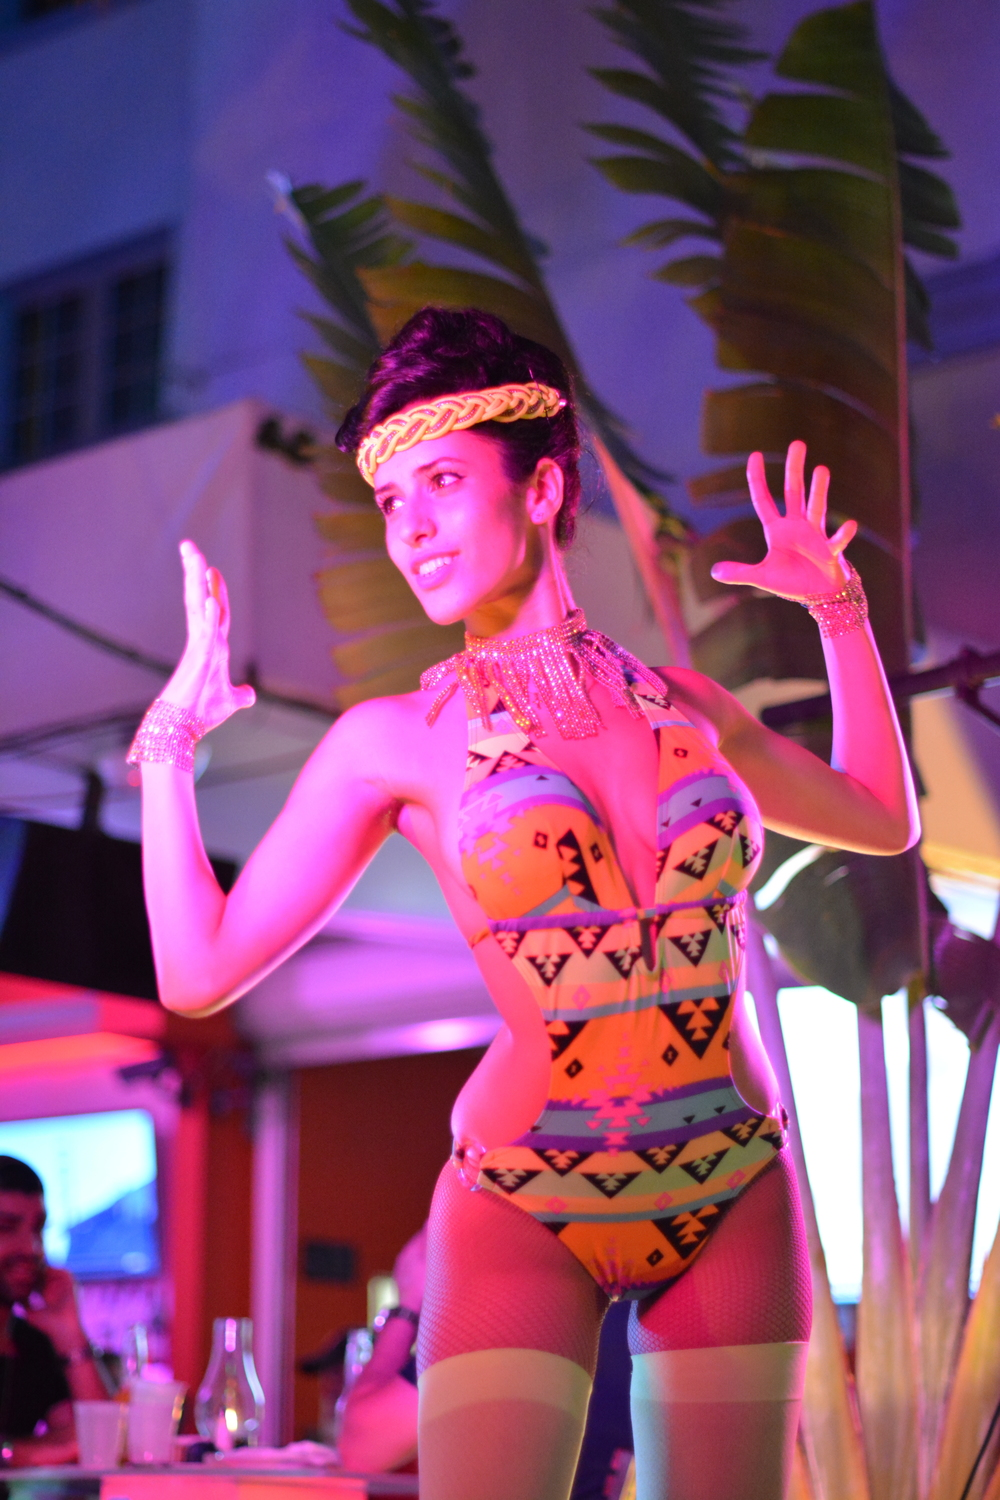 Miami dancer and nightlife entertainer Lidia (@liditalent_and_passion) originally hails from Cuba; seen here performing for patrons and passers-by at Oceans 10 on Ocean Drive in South Beach